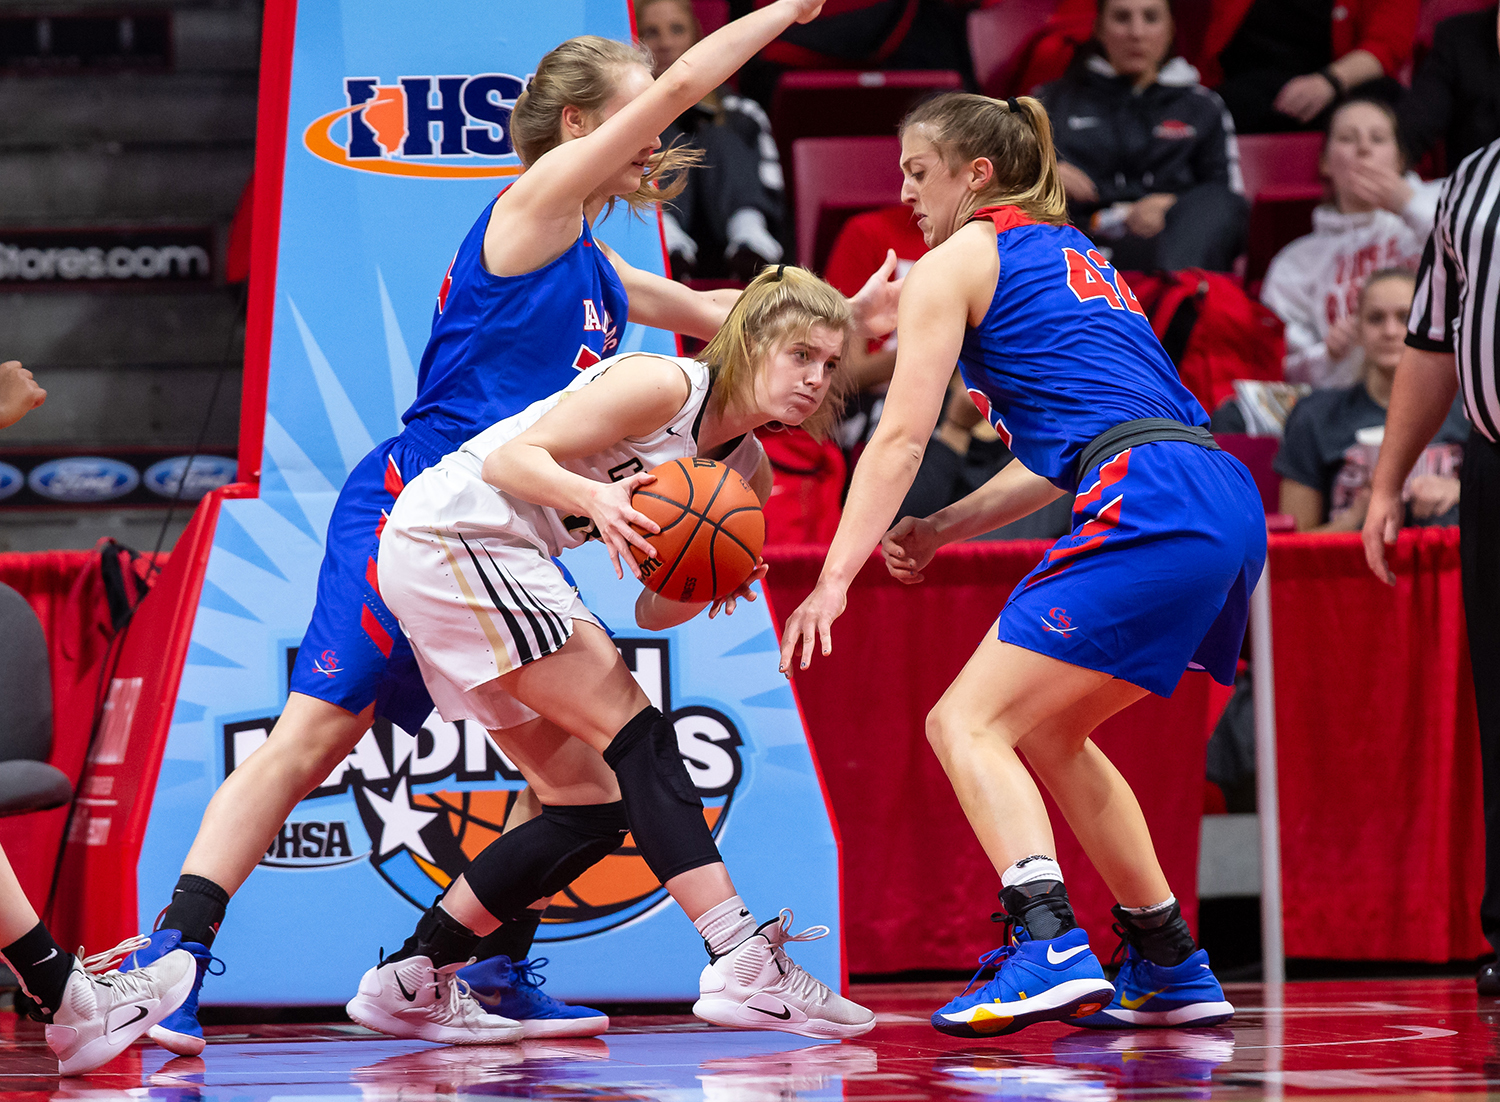 Sacred Heart-Griffin's Addison Scarlette (14) kicks a pass out to her teammates after an offensive rebound against Glen Ellyn Glenbard South's Maggie Bair (42) in the first quarter during the IHSA Class 3A State Tournament semifinals at Redbird Arena, Friday, March 1, 2019, in Normal, Ill. [Justin L. Fowler/The State Journal-Register]